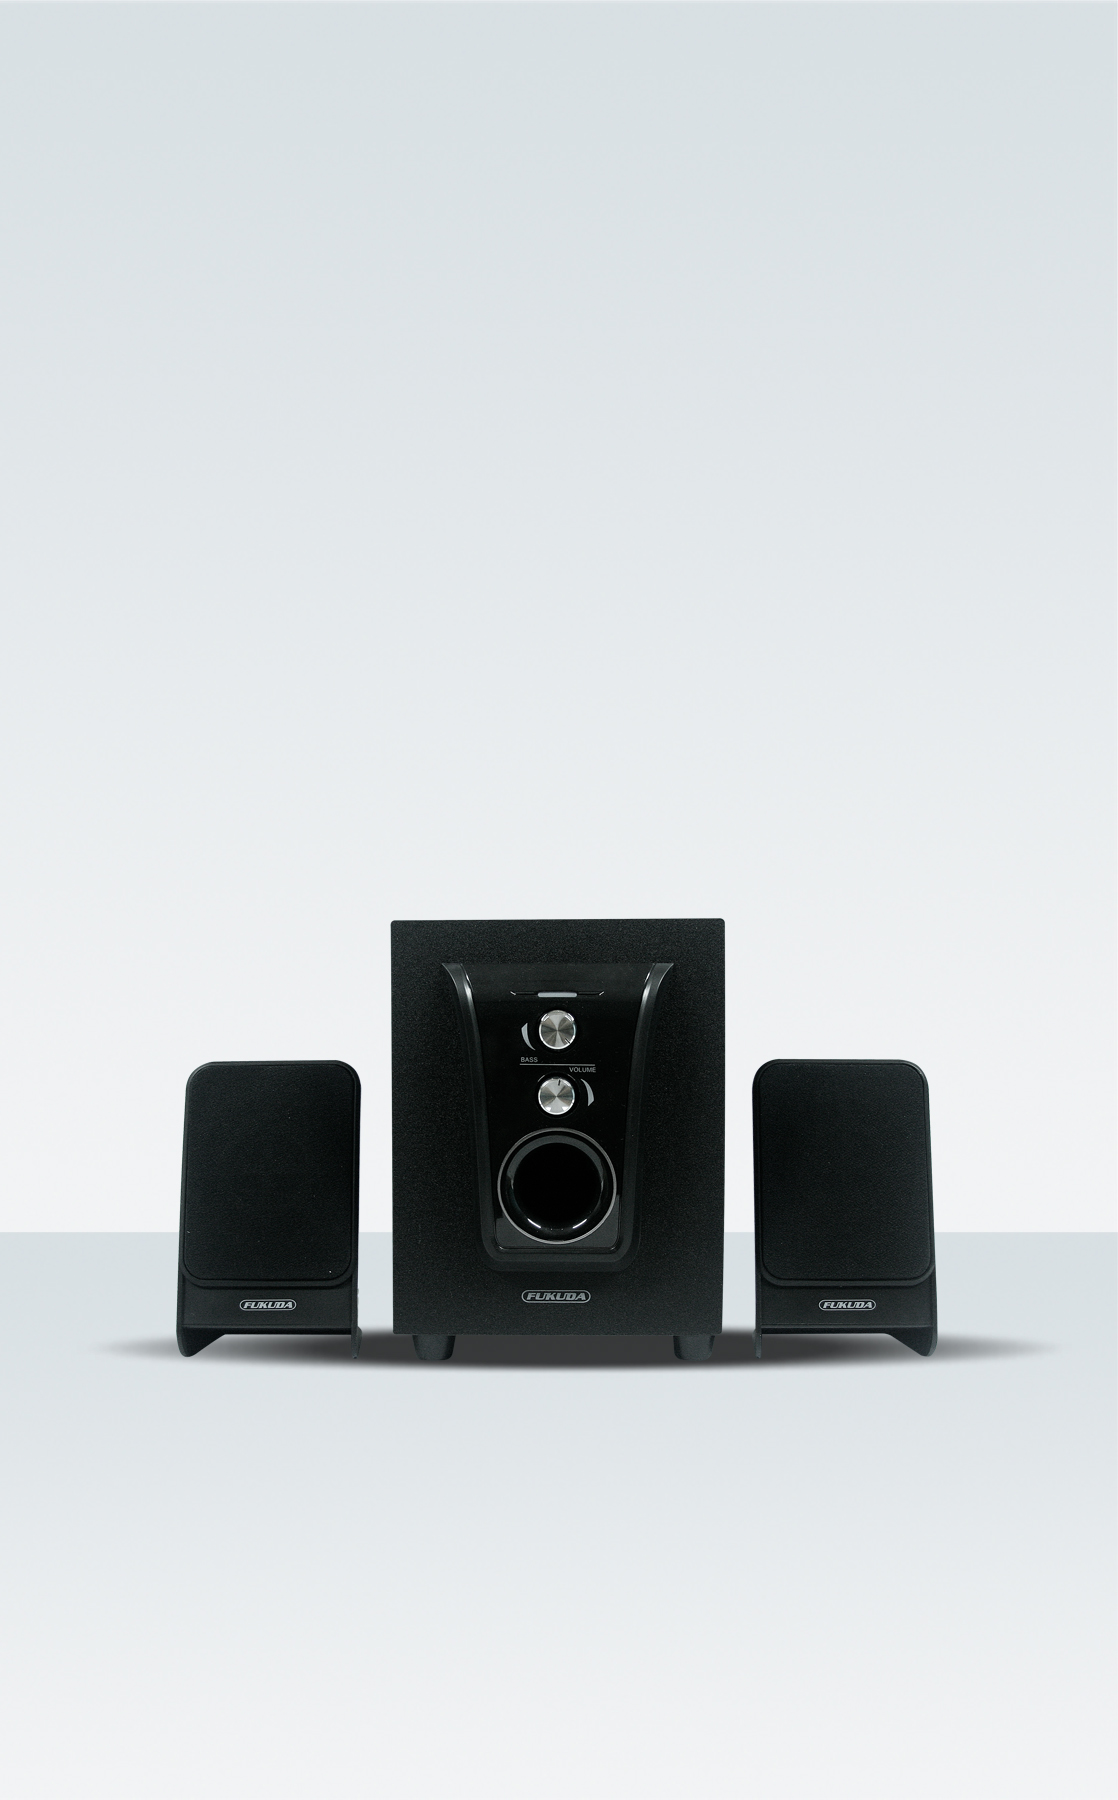 2.1 CH HOME THEATER SPEAKER 20W RMS